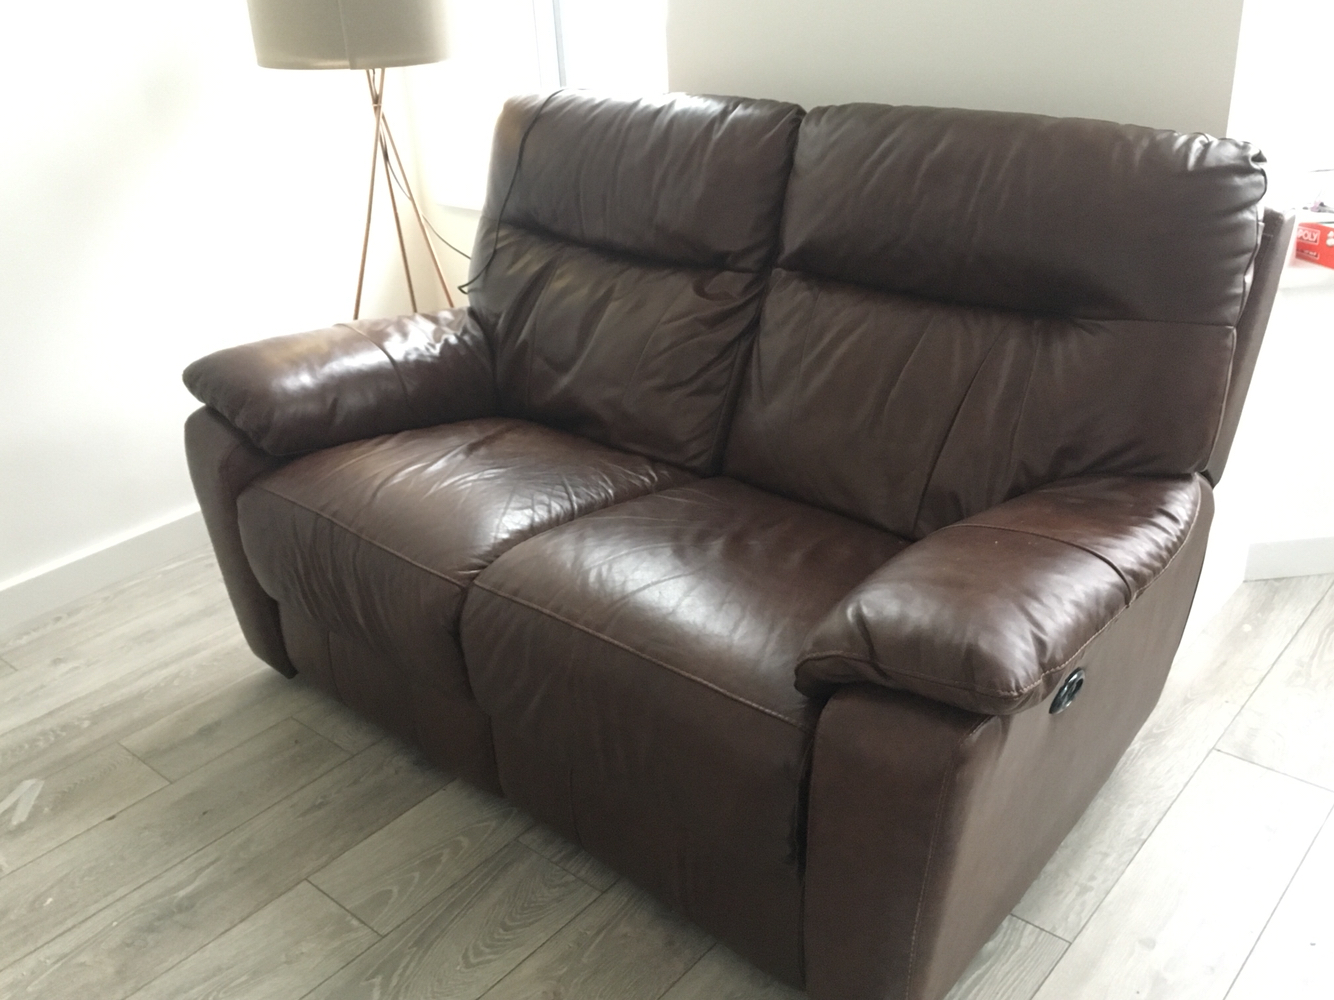 DFS Electric 2 Seater Reclining Sofa & dfs recliner - Second Hand Household Furniture Buy and Sell in ... islam-shia.org